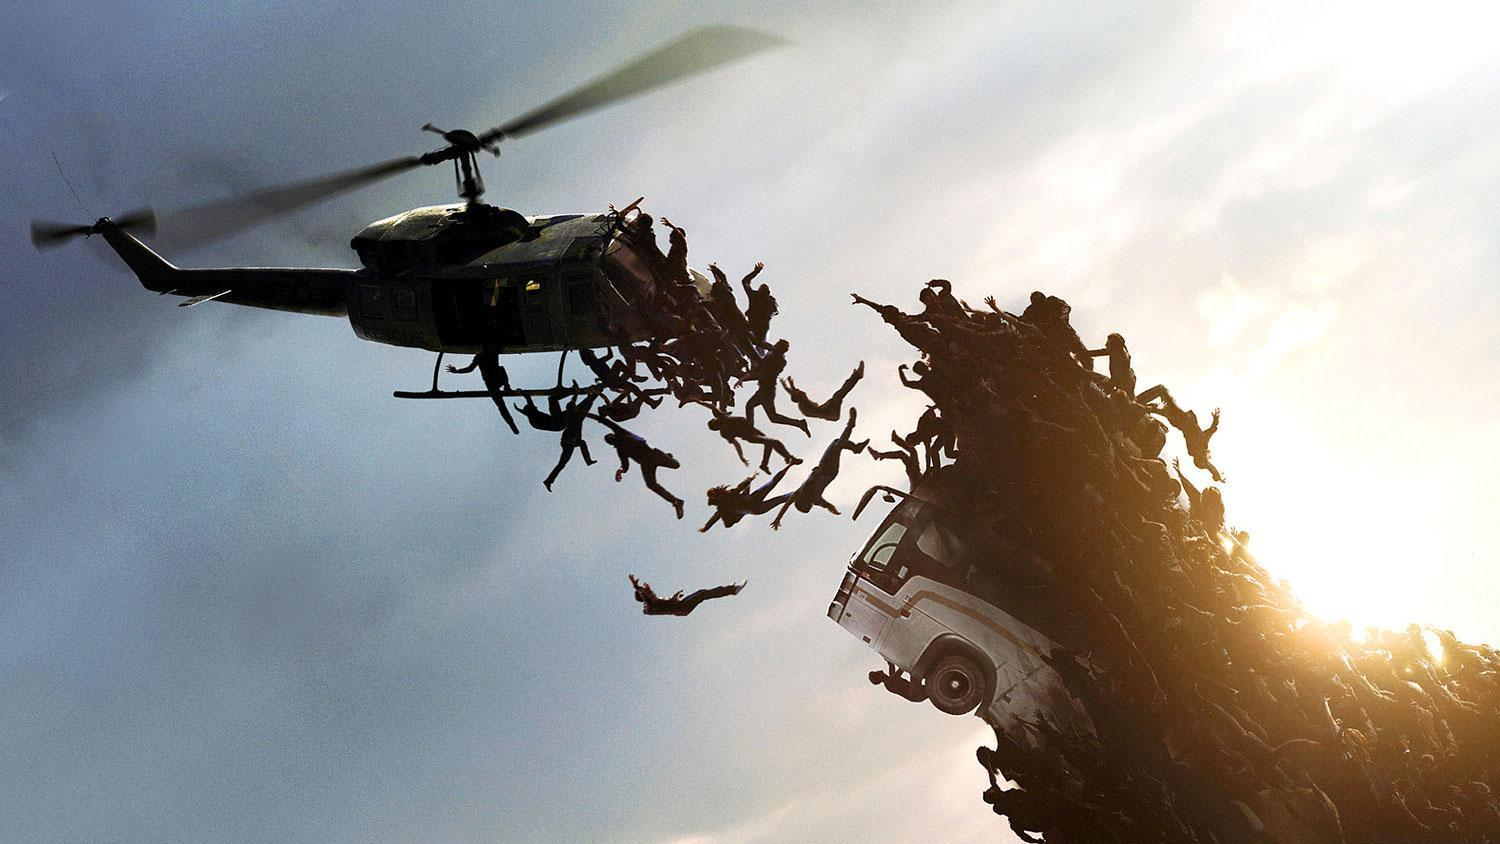 World War Z (2013) Directed by Marc Forster - Movie Review - Image 5